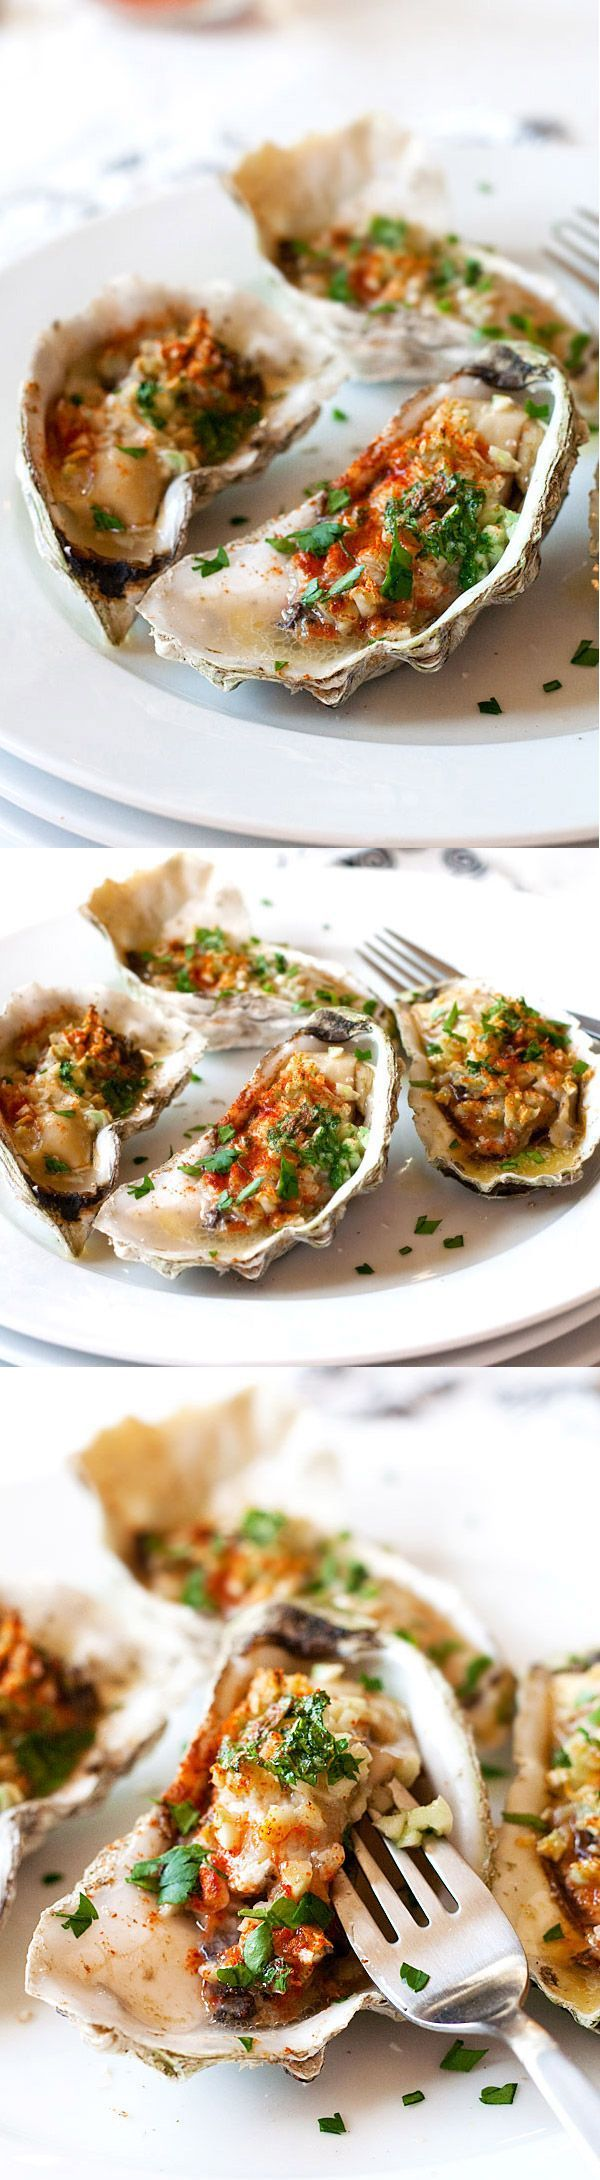 Grilled Oysters (Baked Oysters) - Oyster on the half shell with garlic, butter, parsley and paprika. Juicy, briny and delicious.